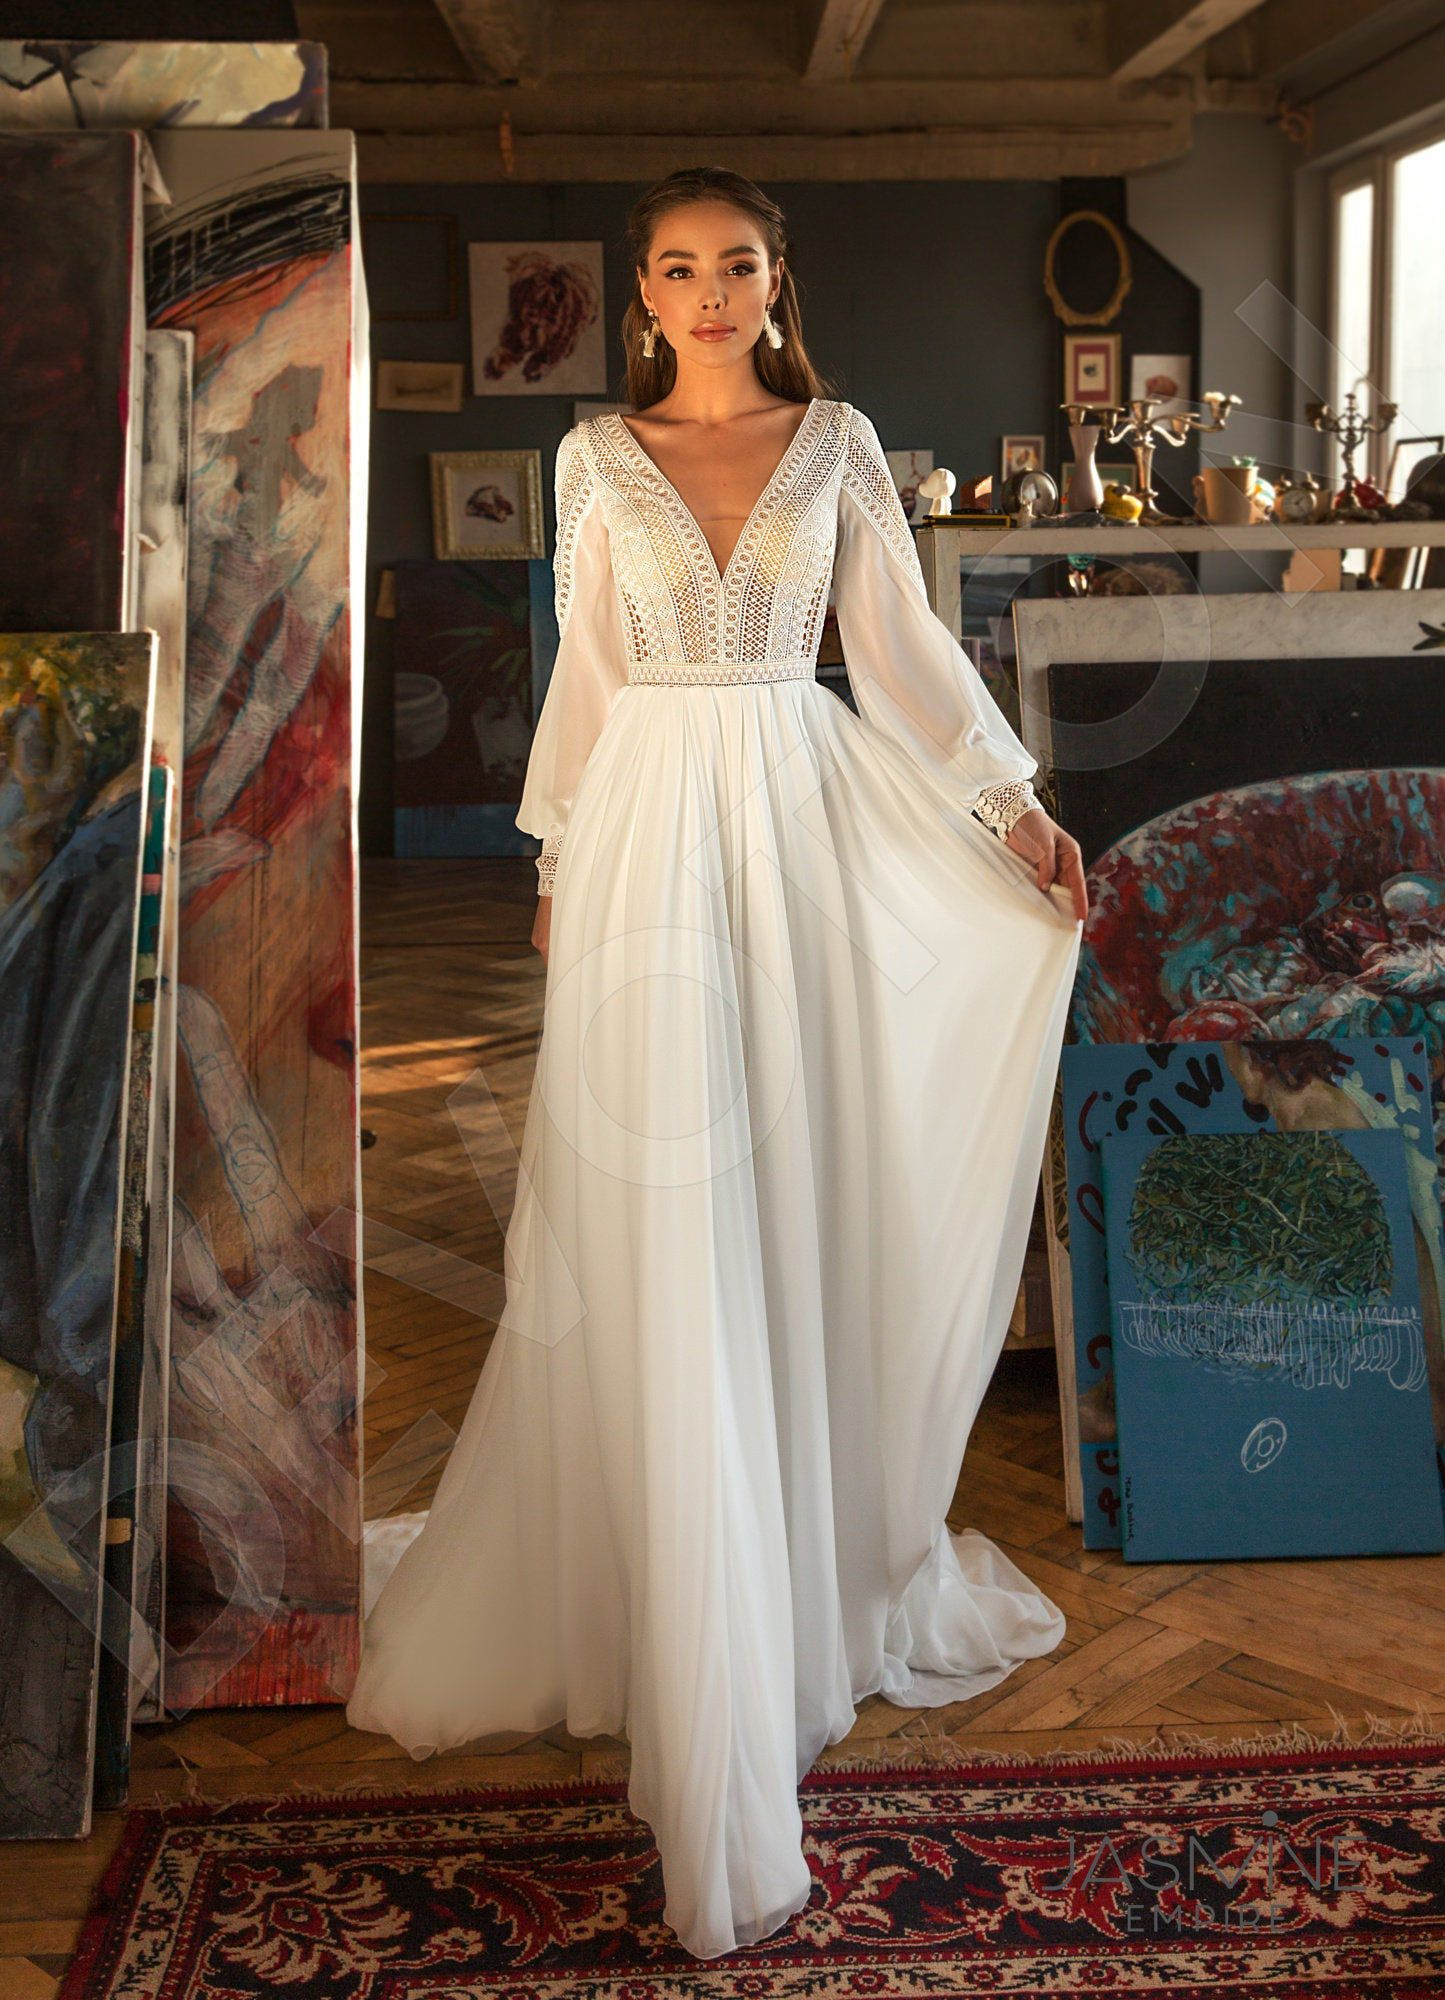 Fashion New Wedding Dresses Exclusively Yours Bridal Boutique  Lovebirds Bridal Boutique Local Bridal Boutique Bridal Couture Miami Free Shipping